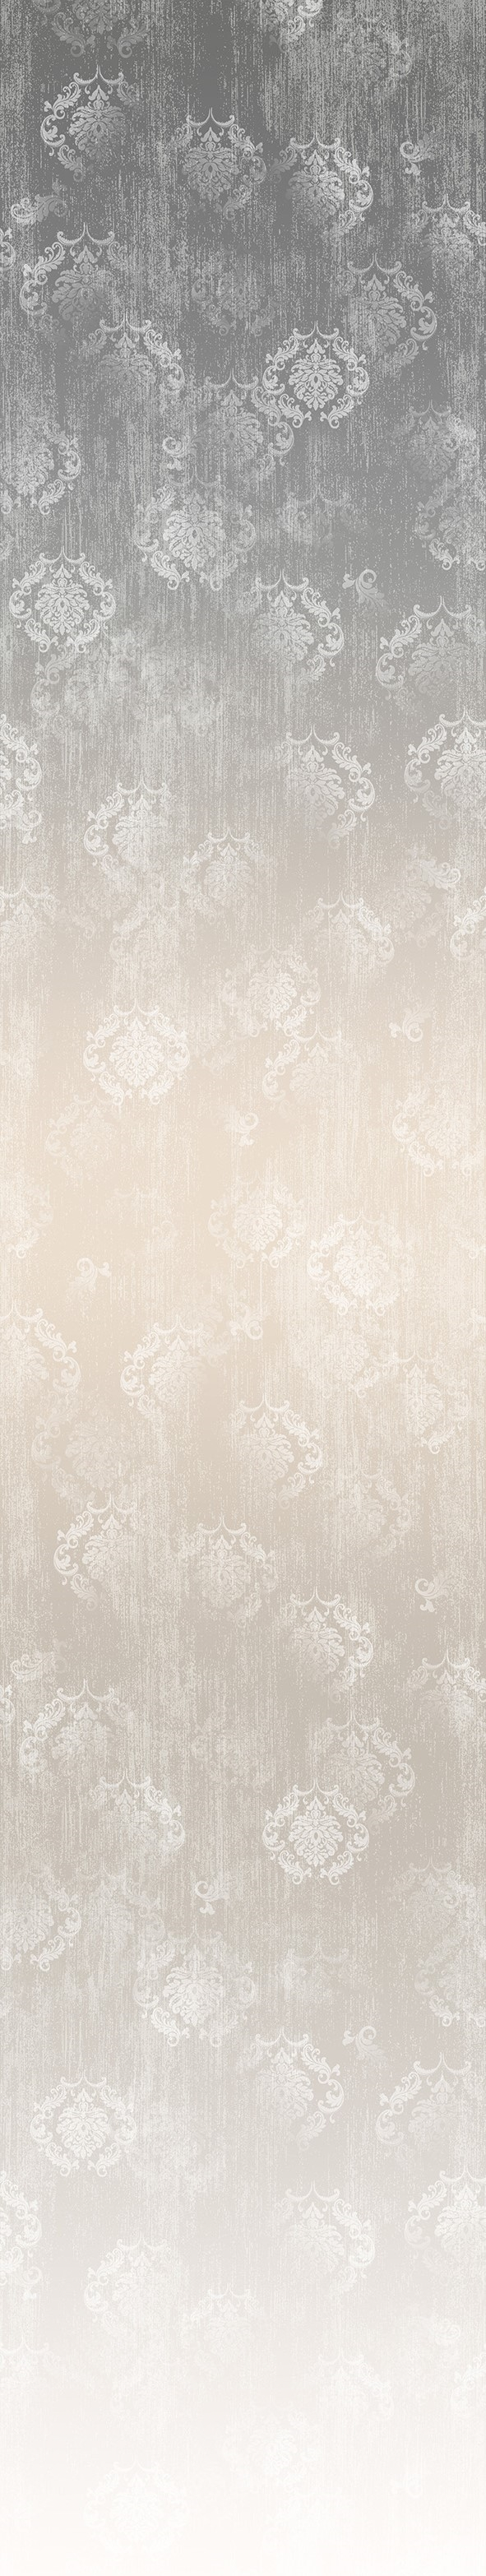 Timeless ombre digital print fabric in gray and neutral taupe tones